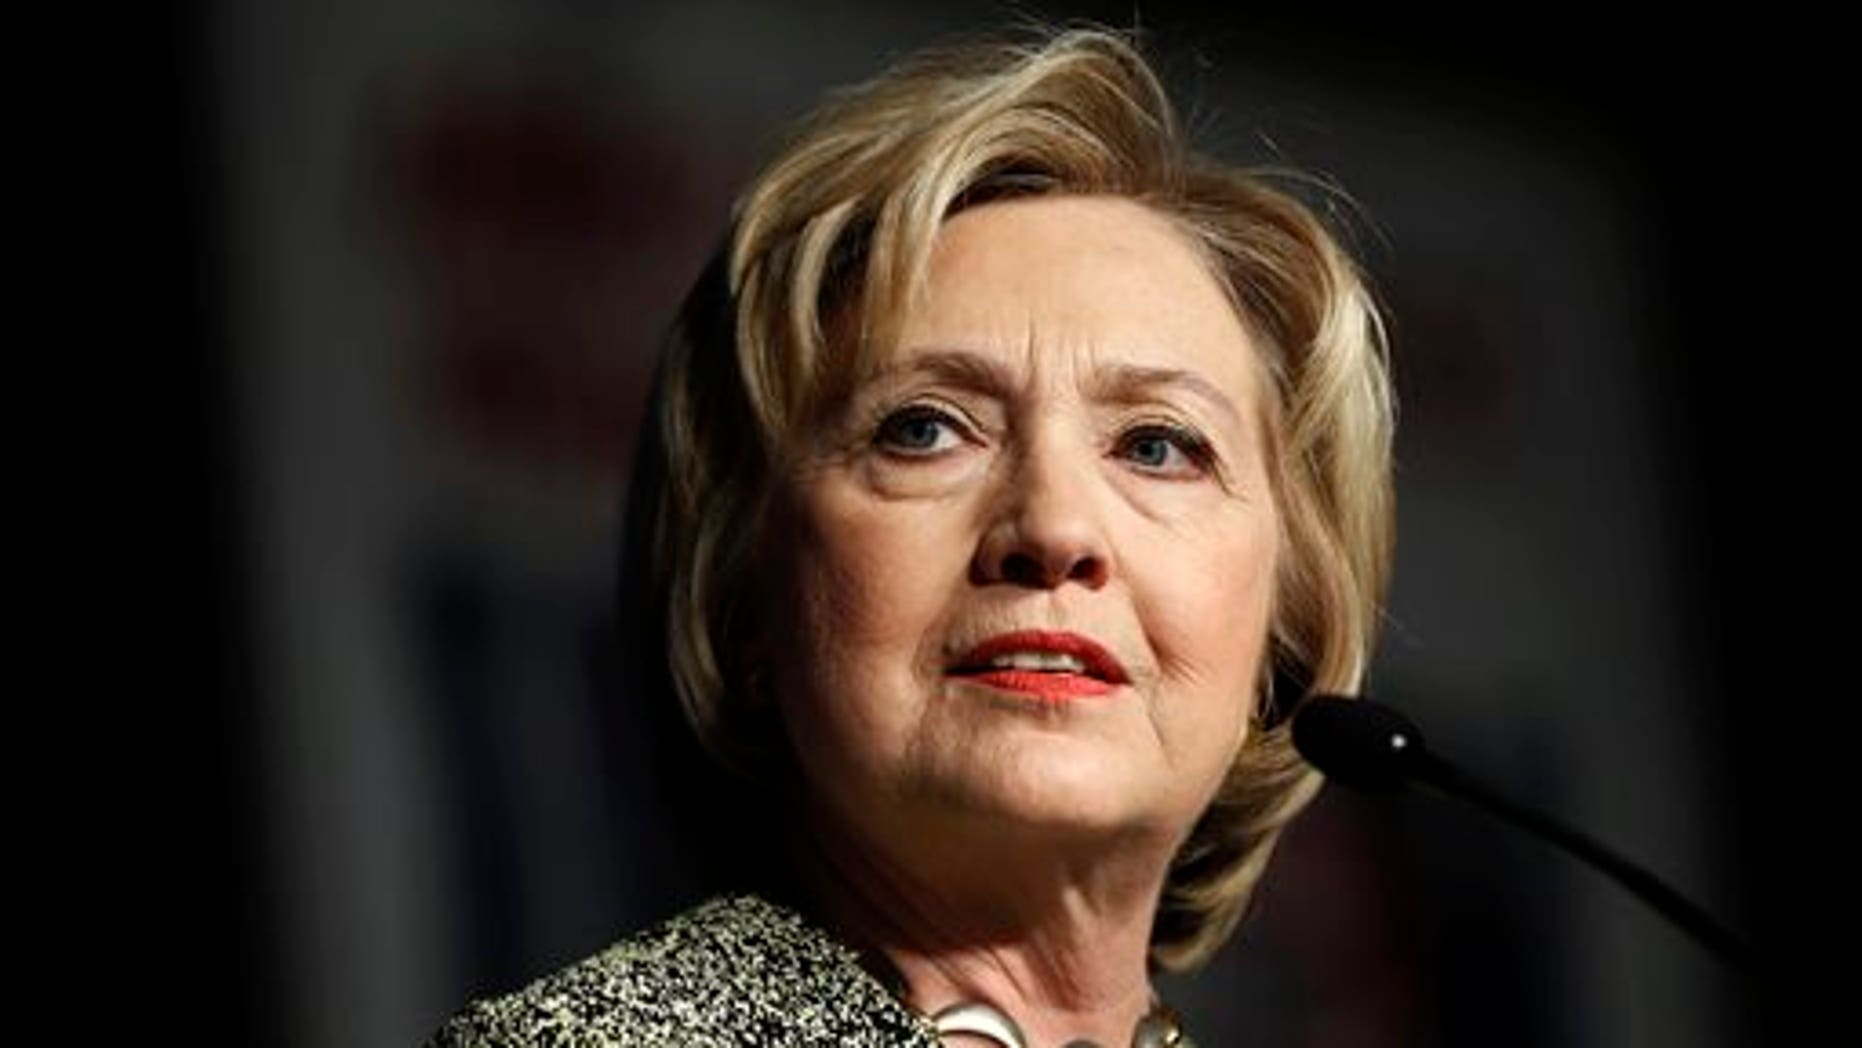 FILE -- April 6, 2016: Democratic presidential candidate Hillary Clinton speaks at the Pennsylvania AFL-CIO Convention in Philadelphia. (AP Photo/Matt Rourke)